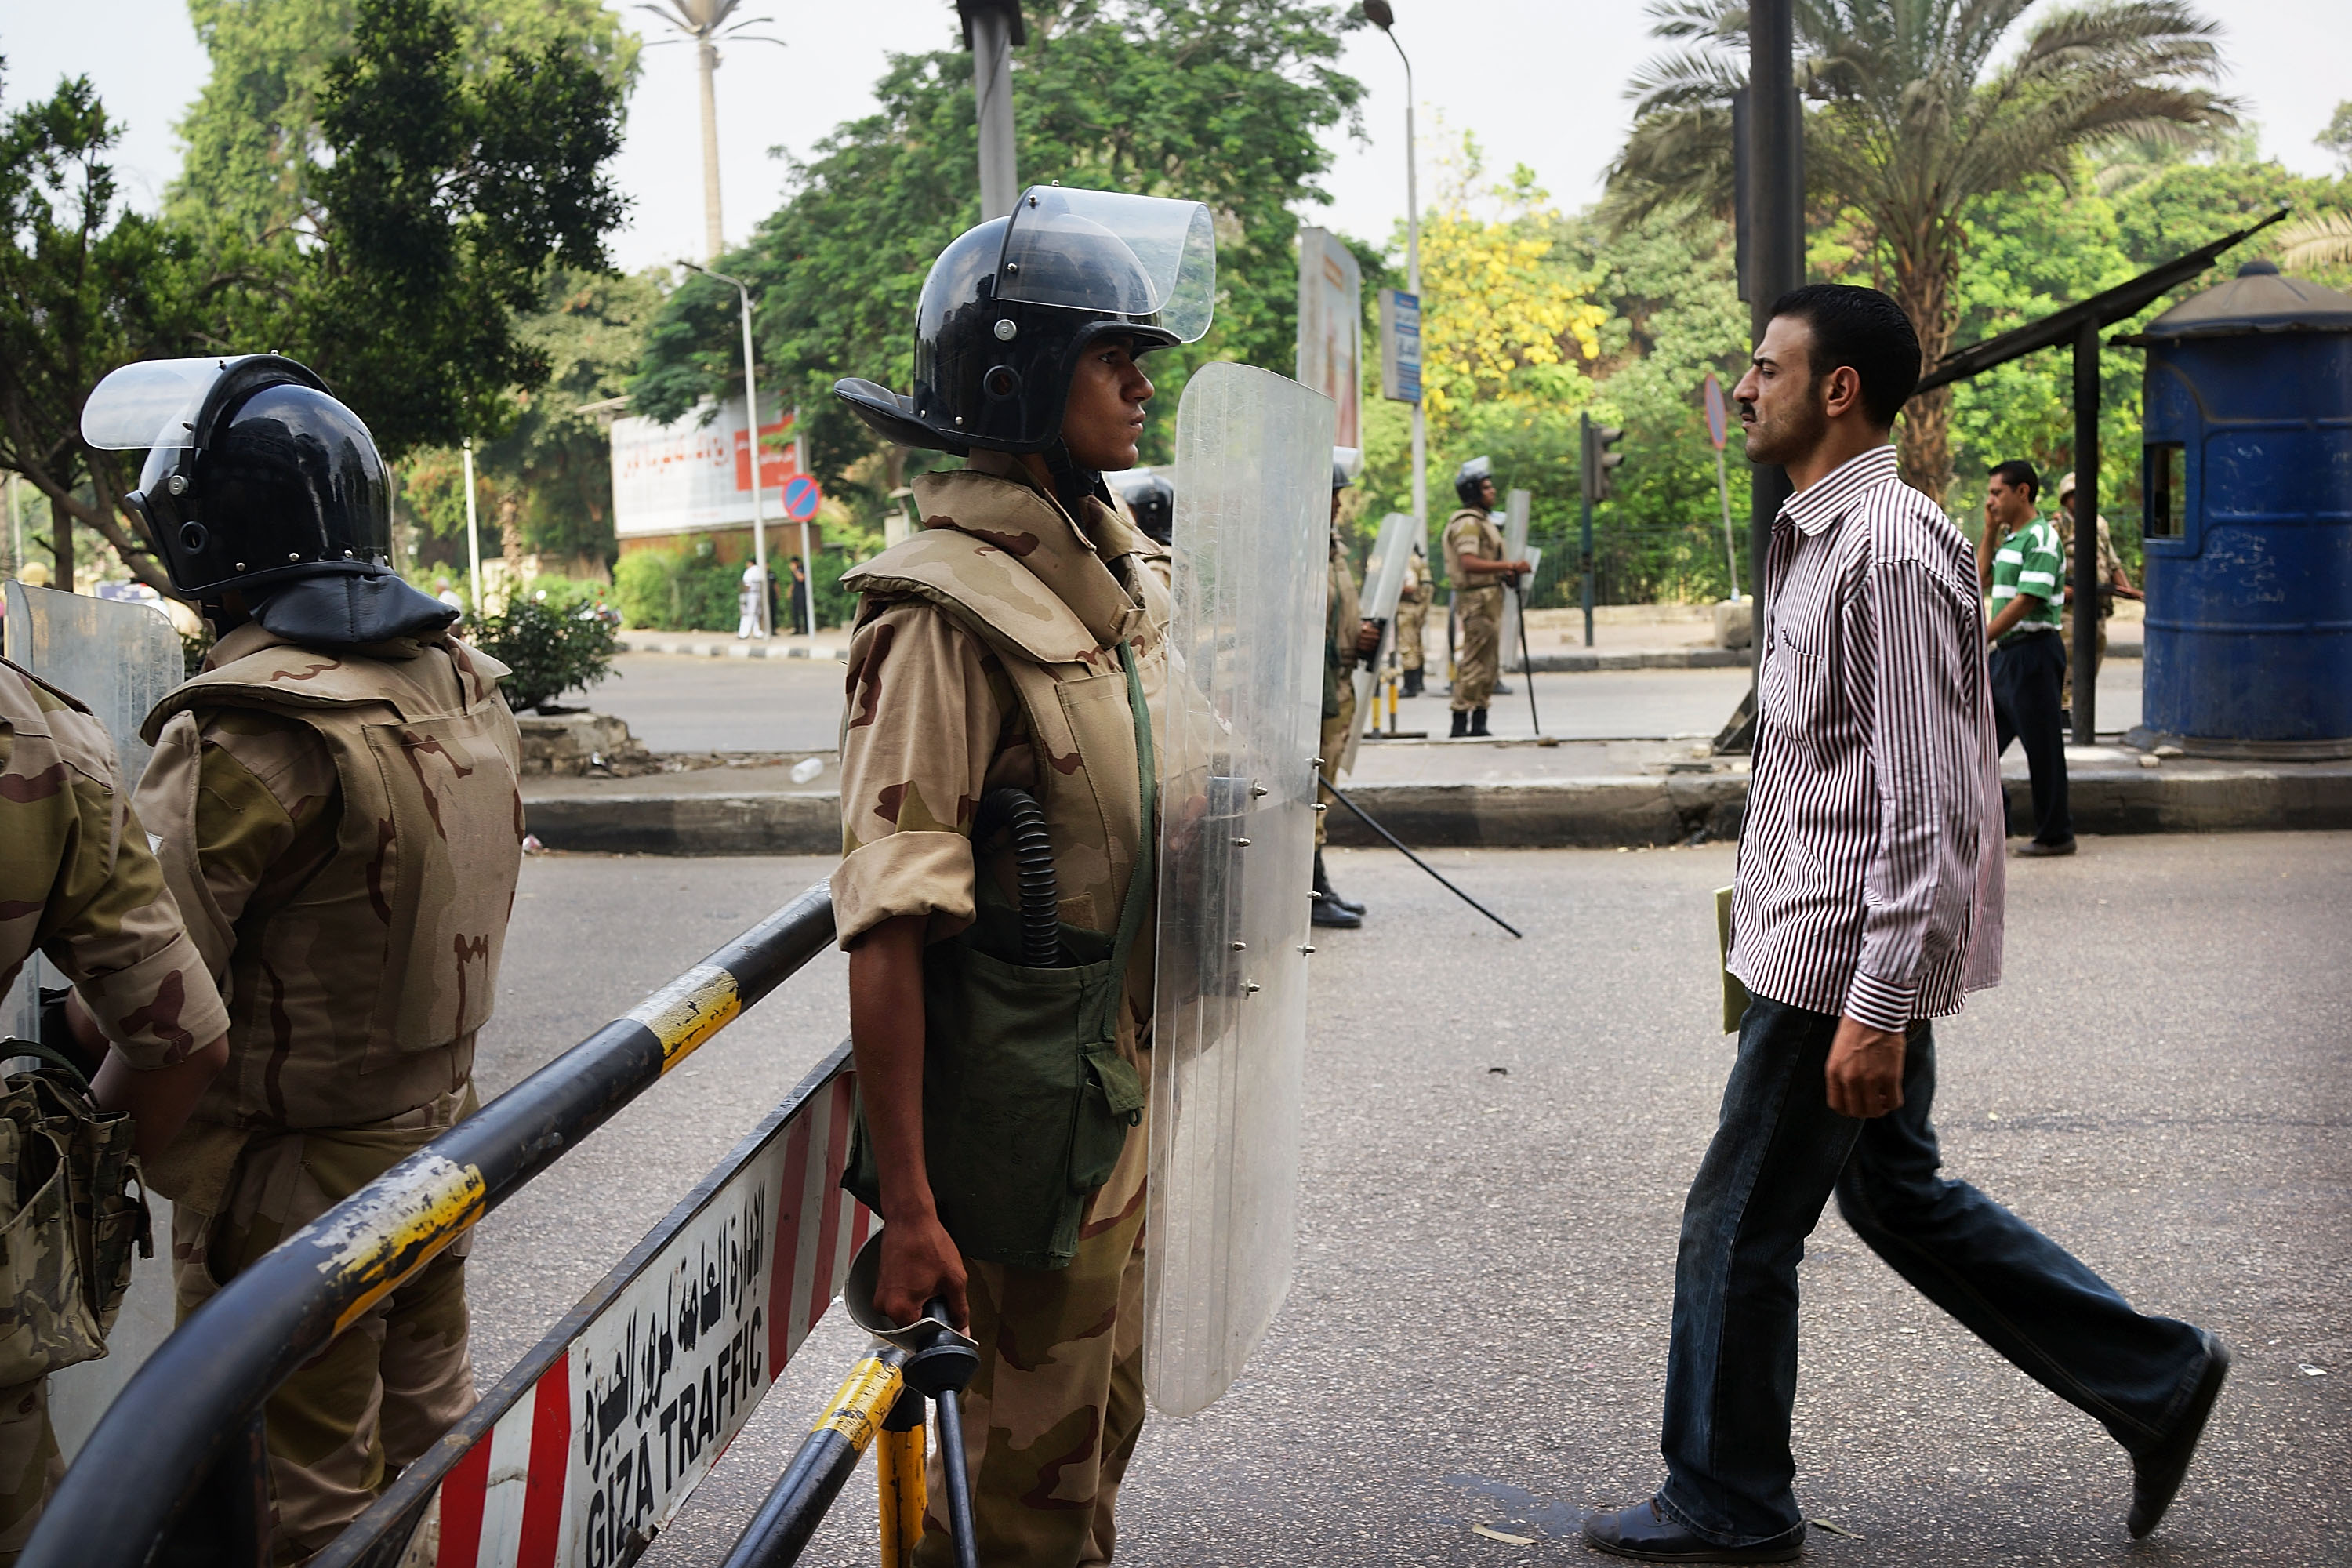 Pedestrians walk by members of the Egyptian military as they stand guard at a roadblock in Cairo's Giza district.